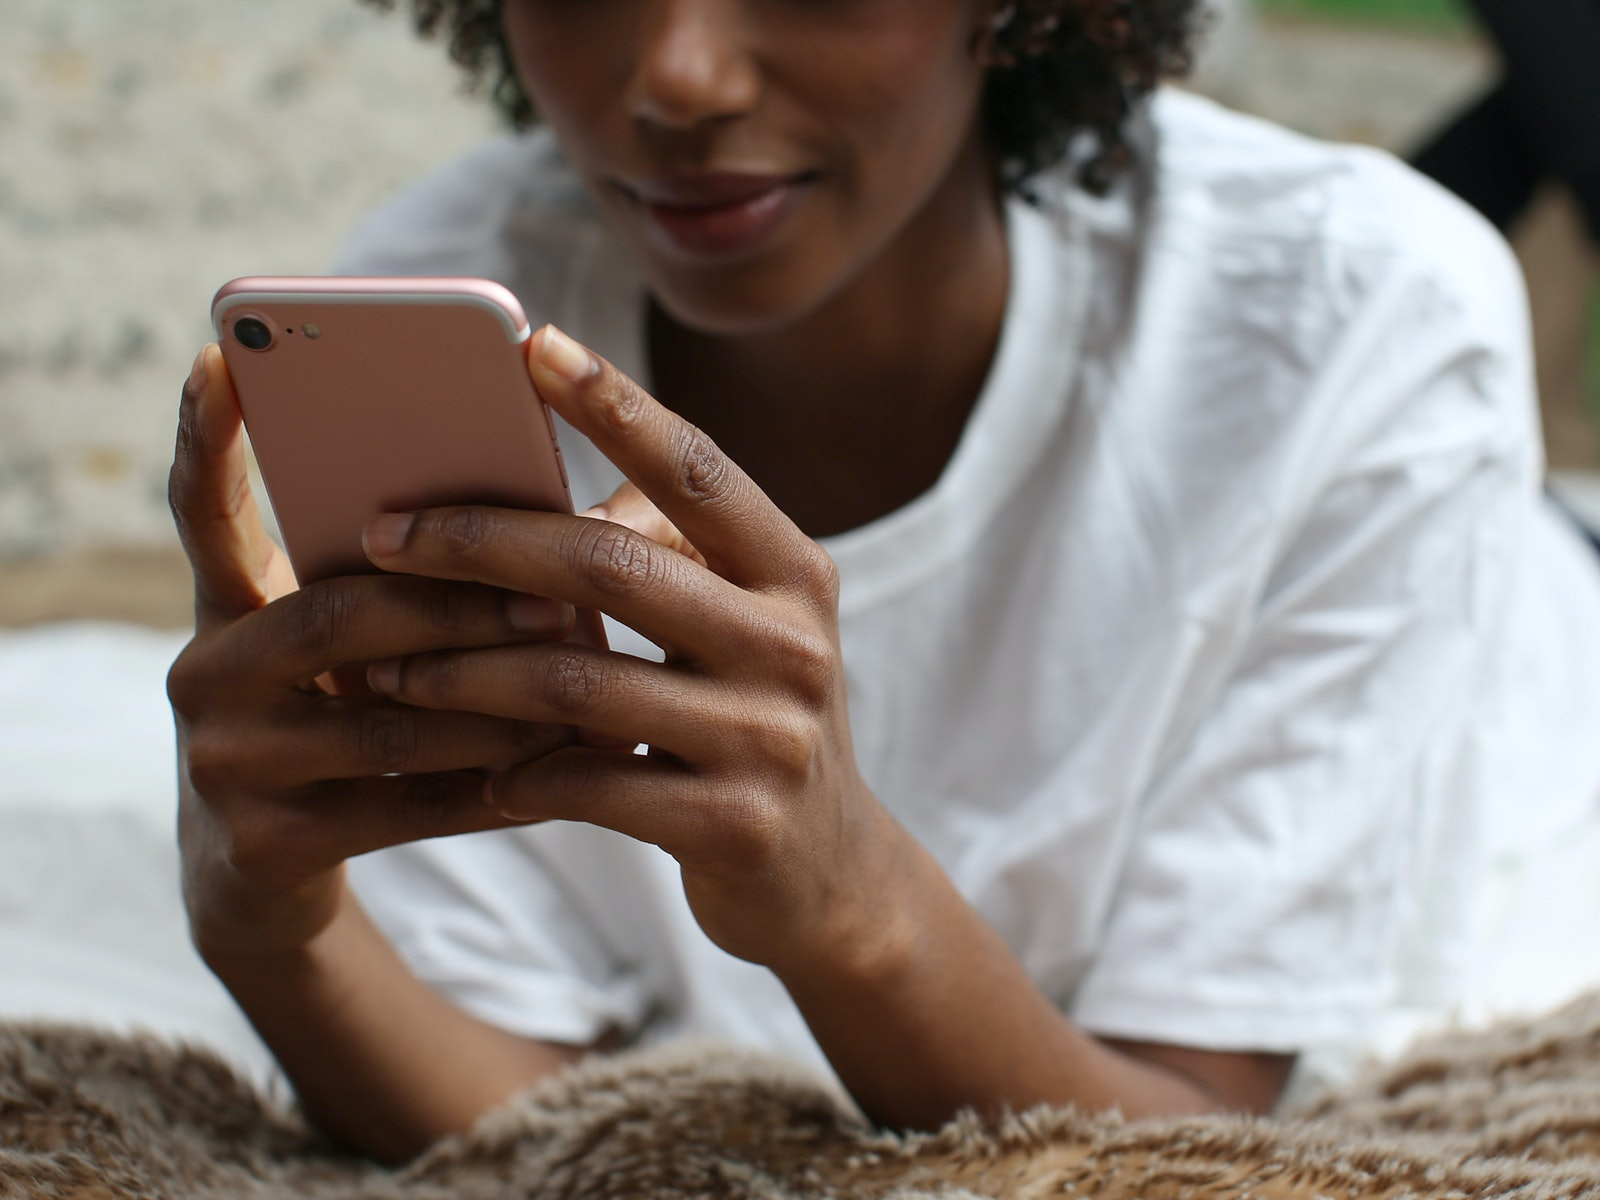 Using dating apps while being in a relationship is not considered cheating